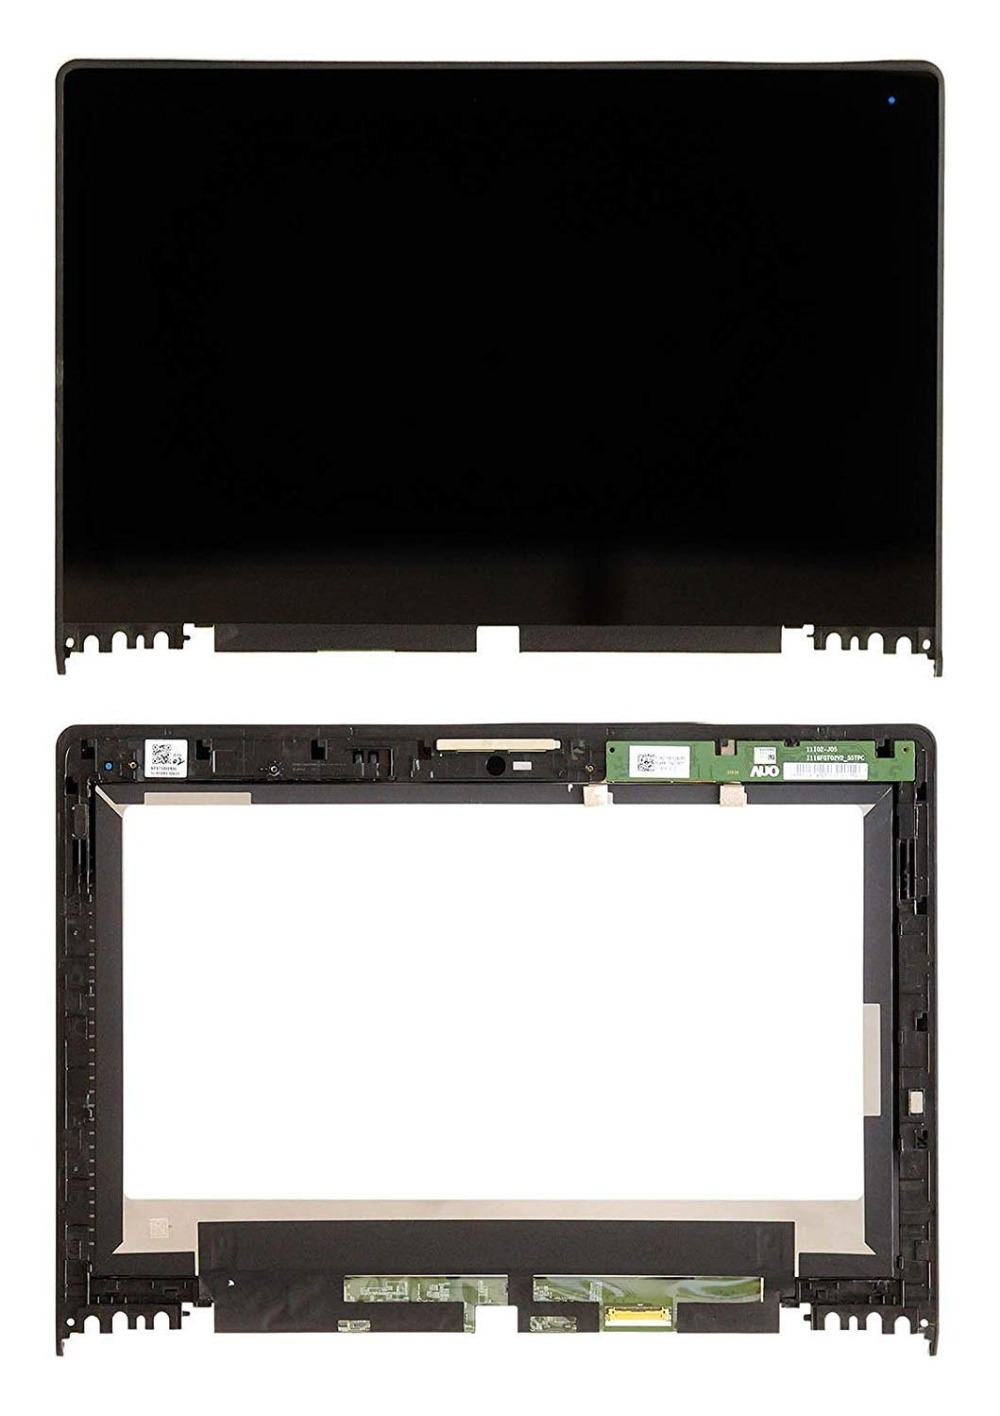 NEW Lenovo Yoga 2 11 20332 Touch Screen LED LCD Digitizer Assembly WITH BEZEL